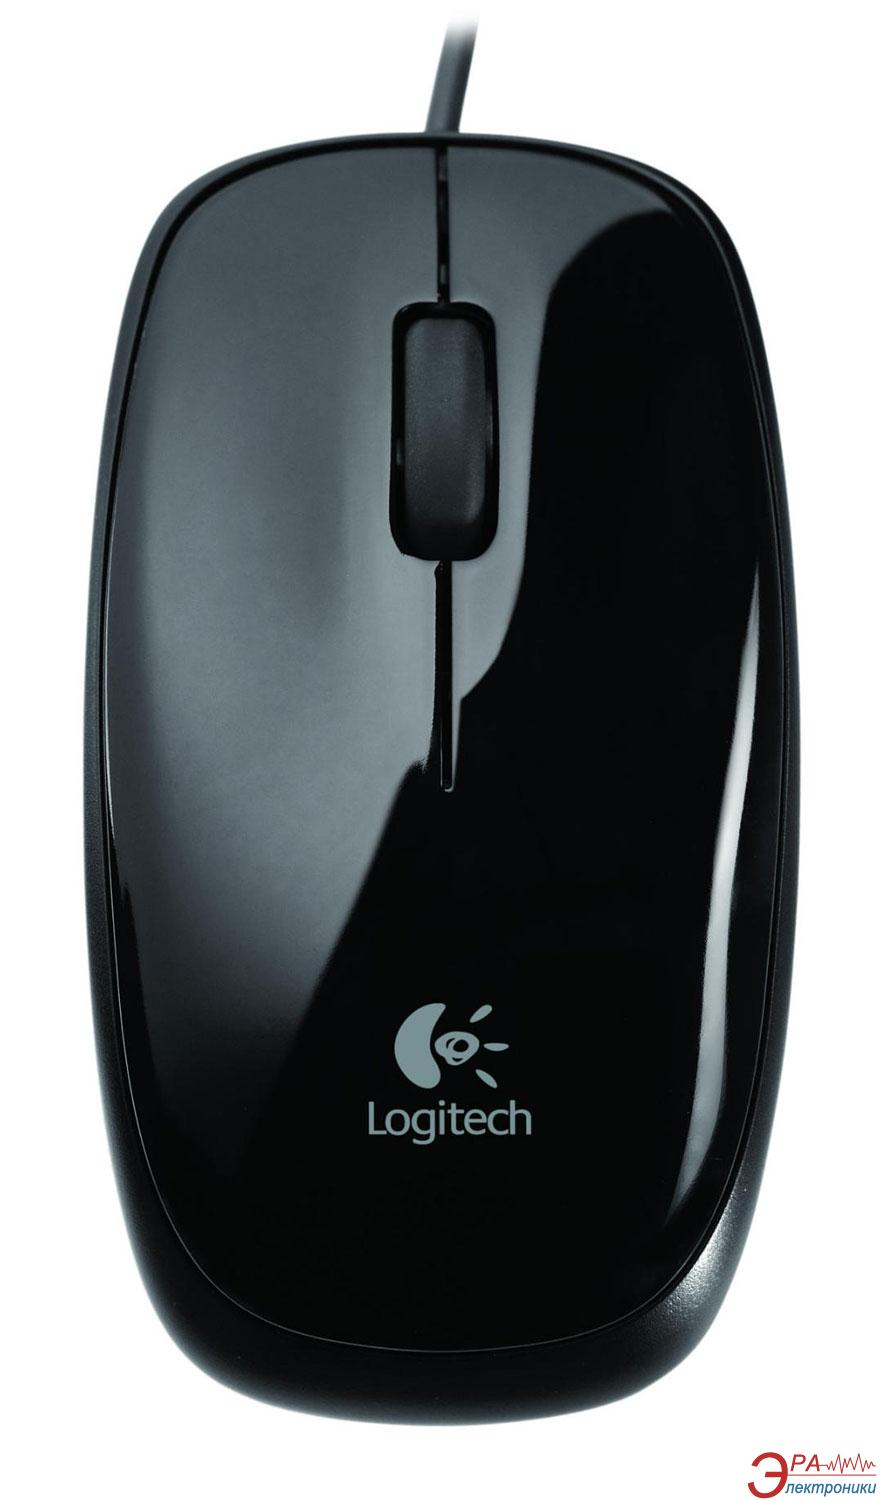 Мышь Logitech M115 for Notebooks (910-001269) Black